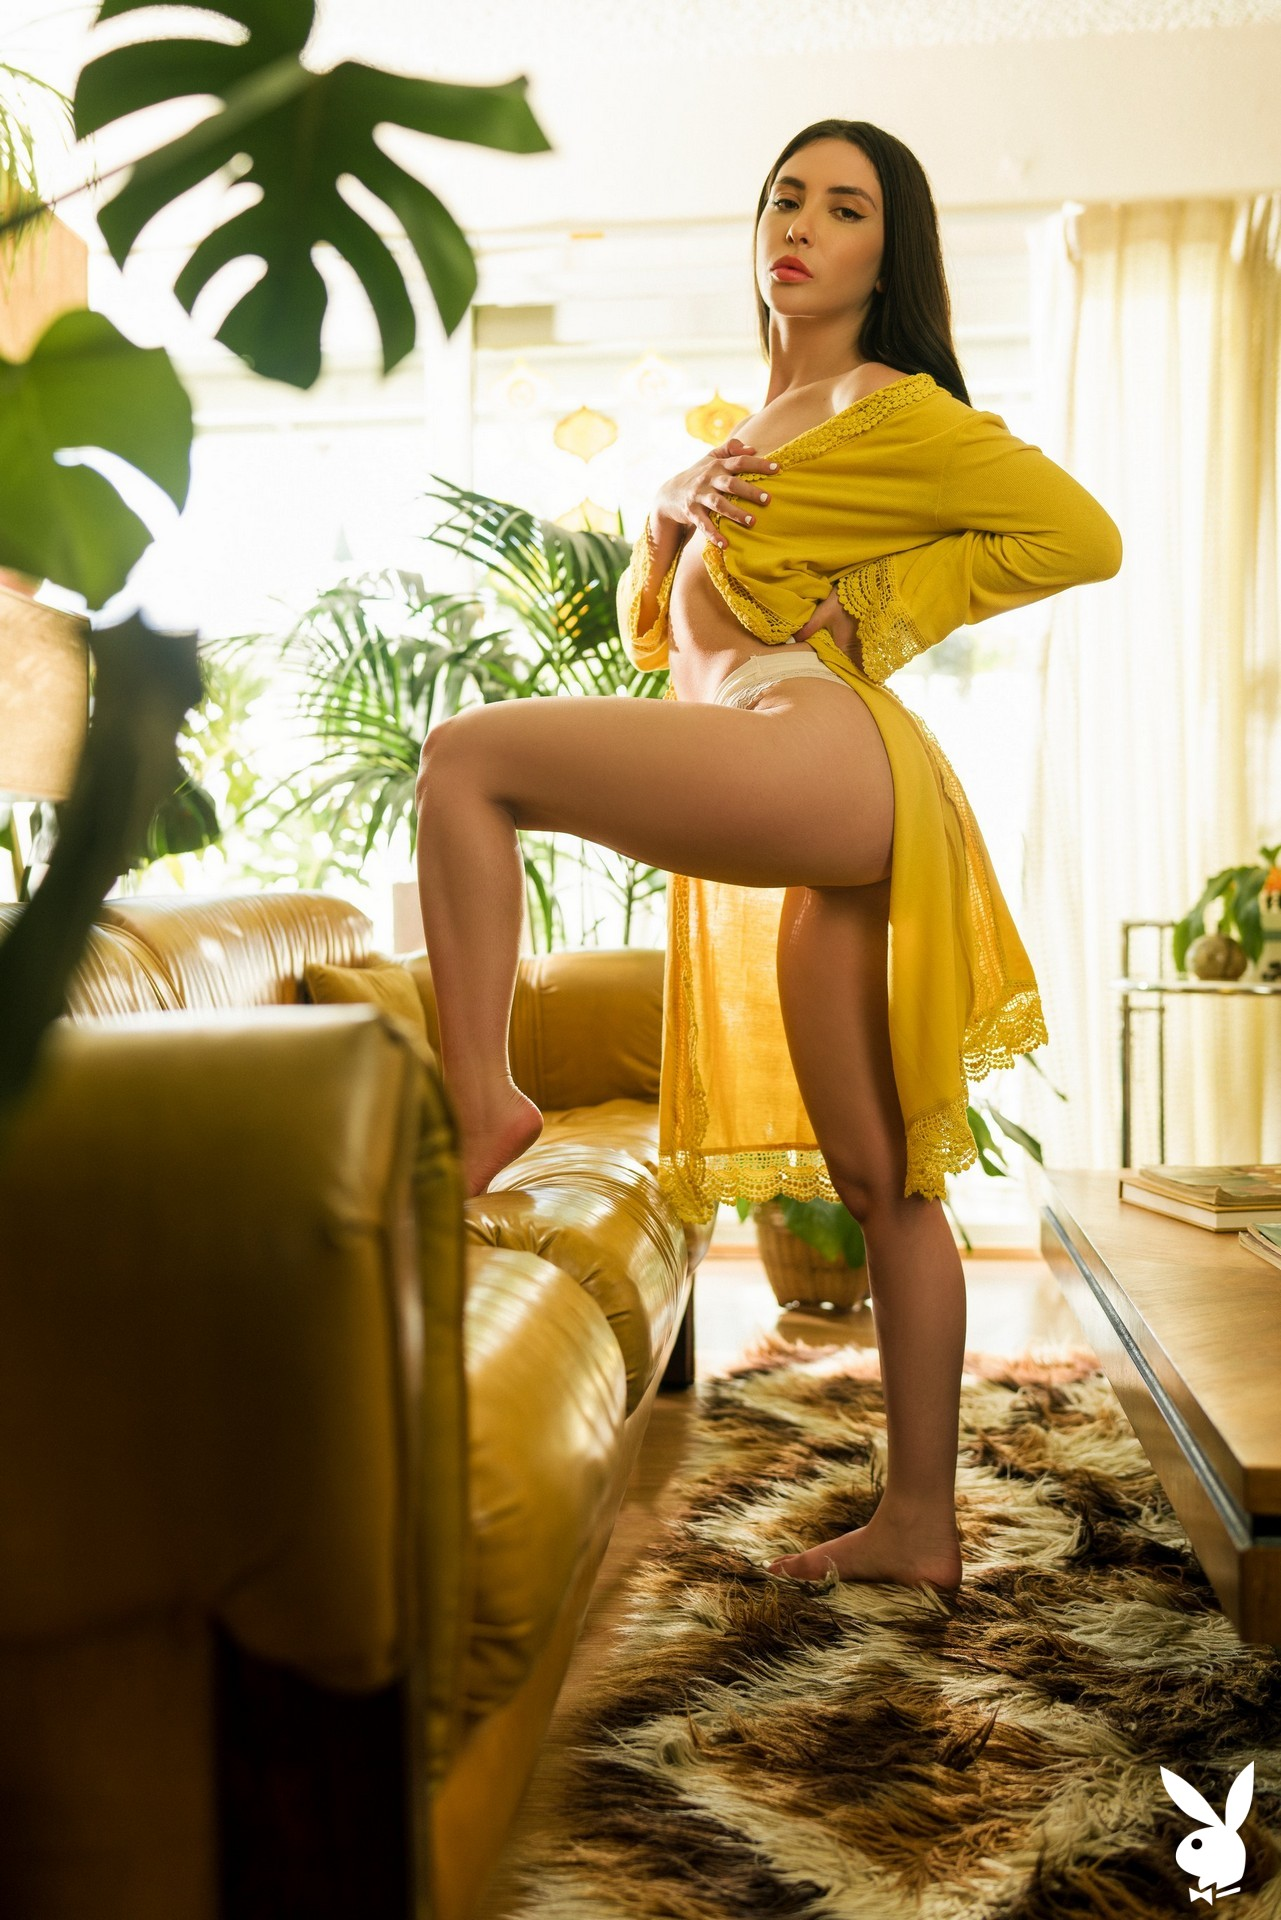 Jane Wilde In Free Your Mind Playboy Plus (12)